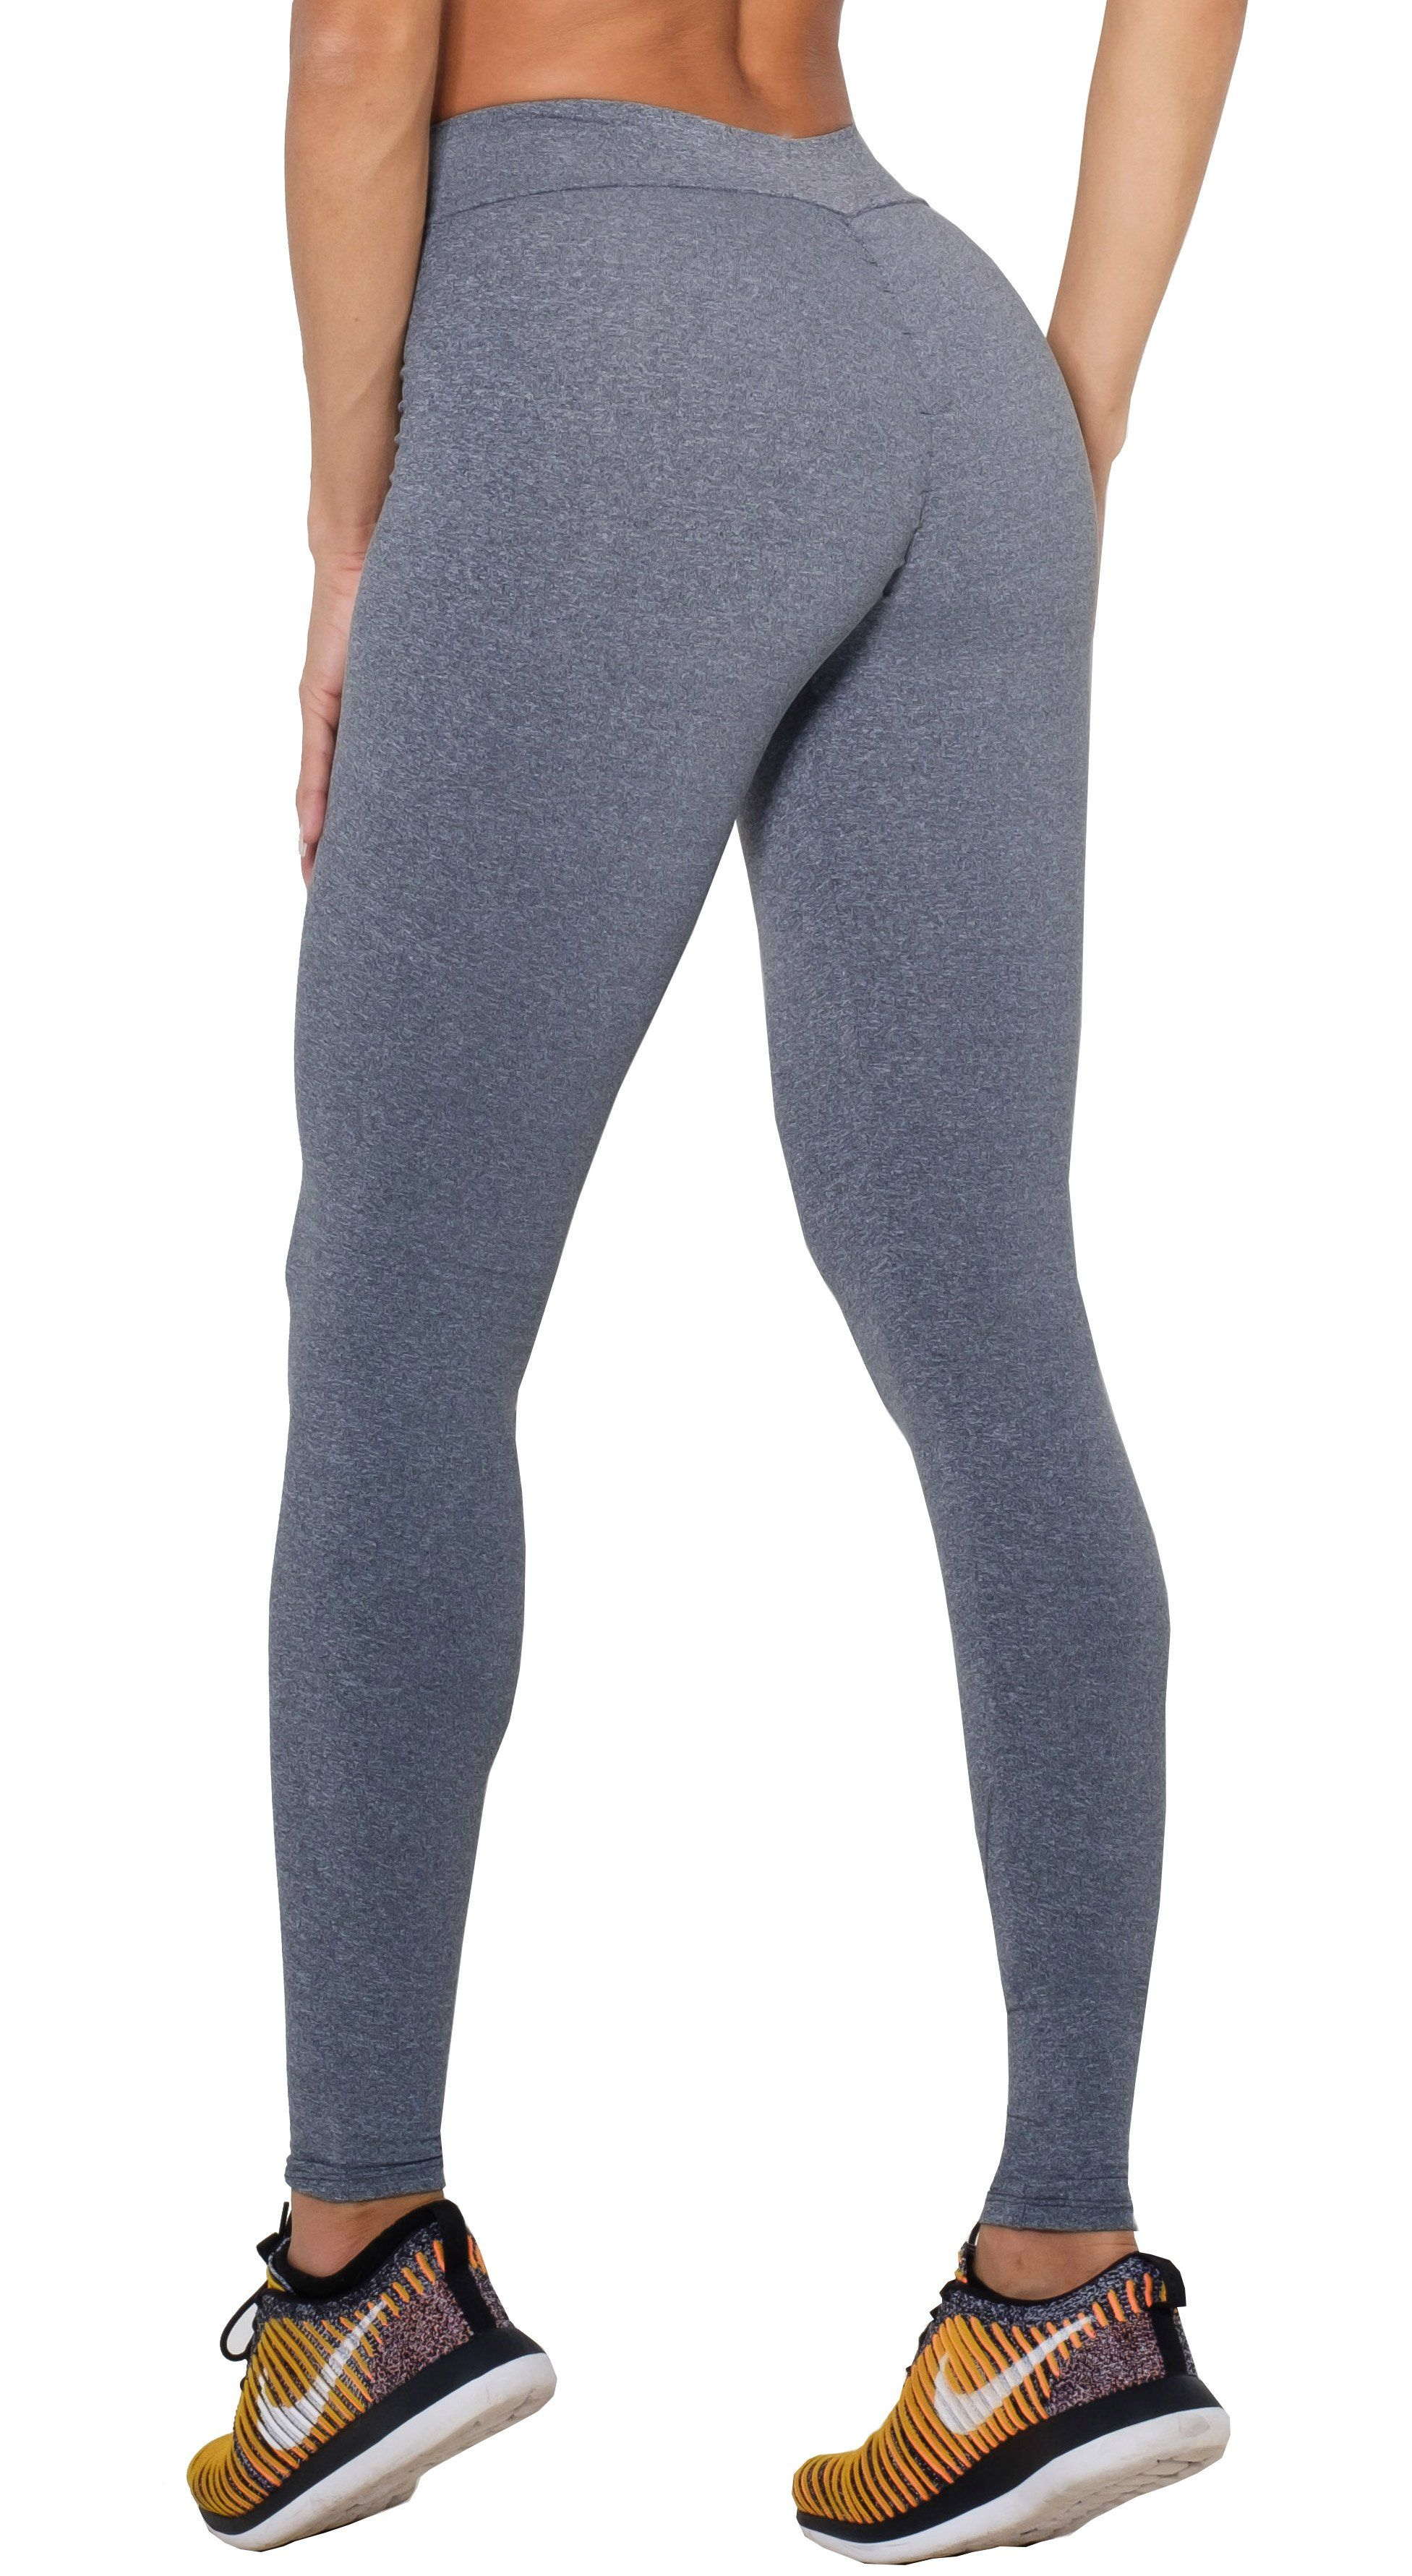 fbfa403754afcf Canoan - Brazilian Workout Legging - Scrunch Booty Lift! Compression Gray